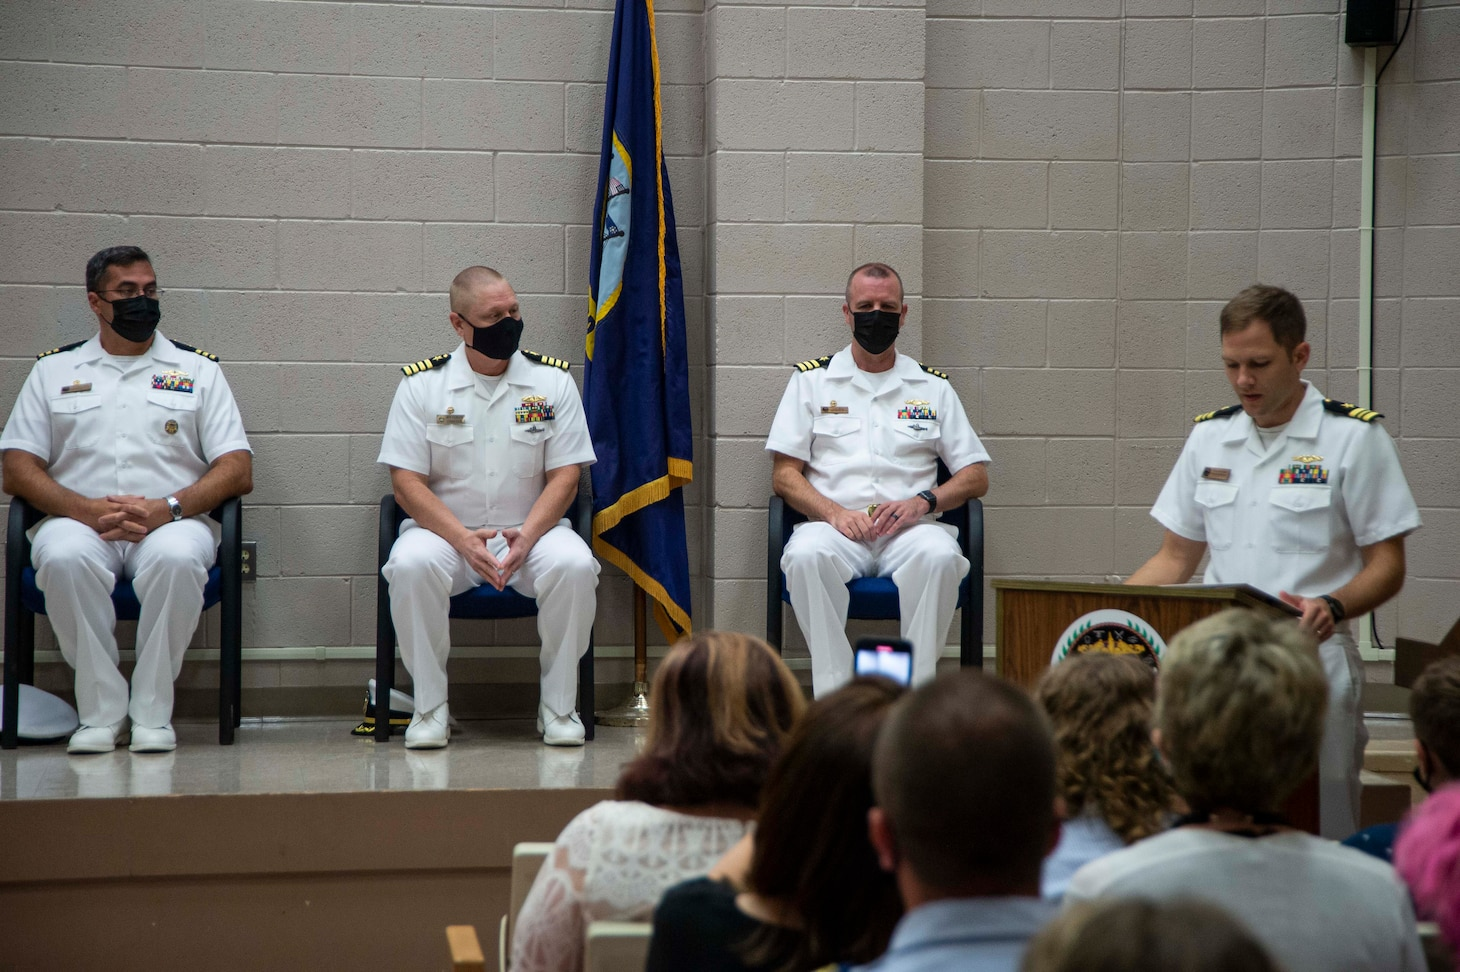 Lt. Cmdr. Nicholas Tuuk, right, executive officer of Pre-commissioning unit New Jersey (SSN 796) introduces the official party during a change-of-command ceremony at Submarine Learning Facility Norfolk in Norfolk, Va., Aug. 20, 2021.